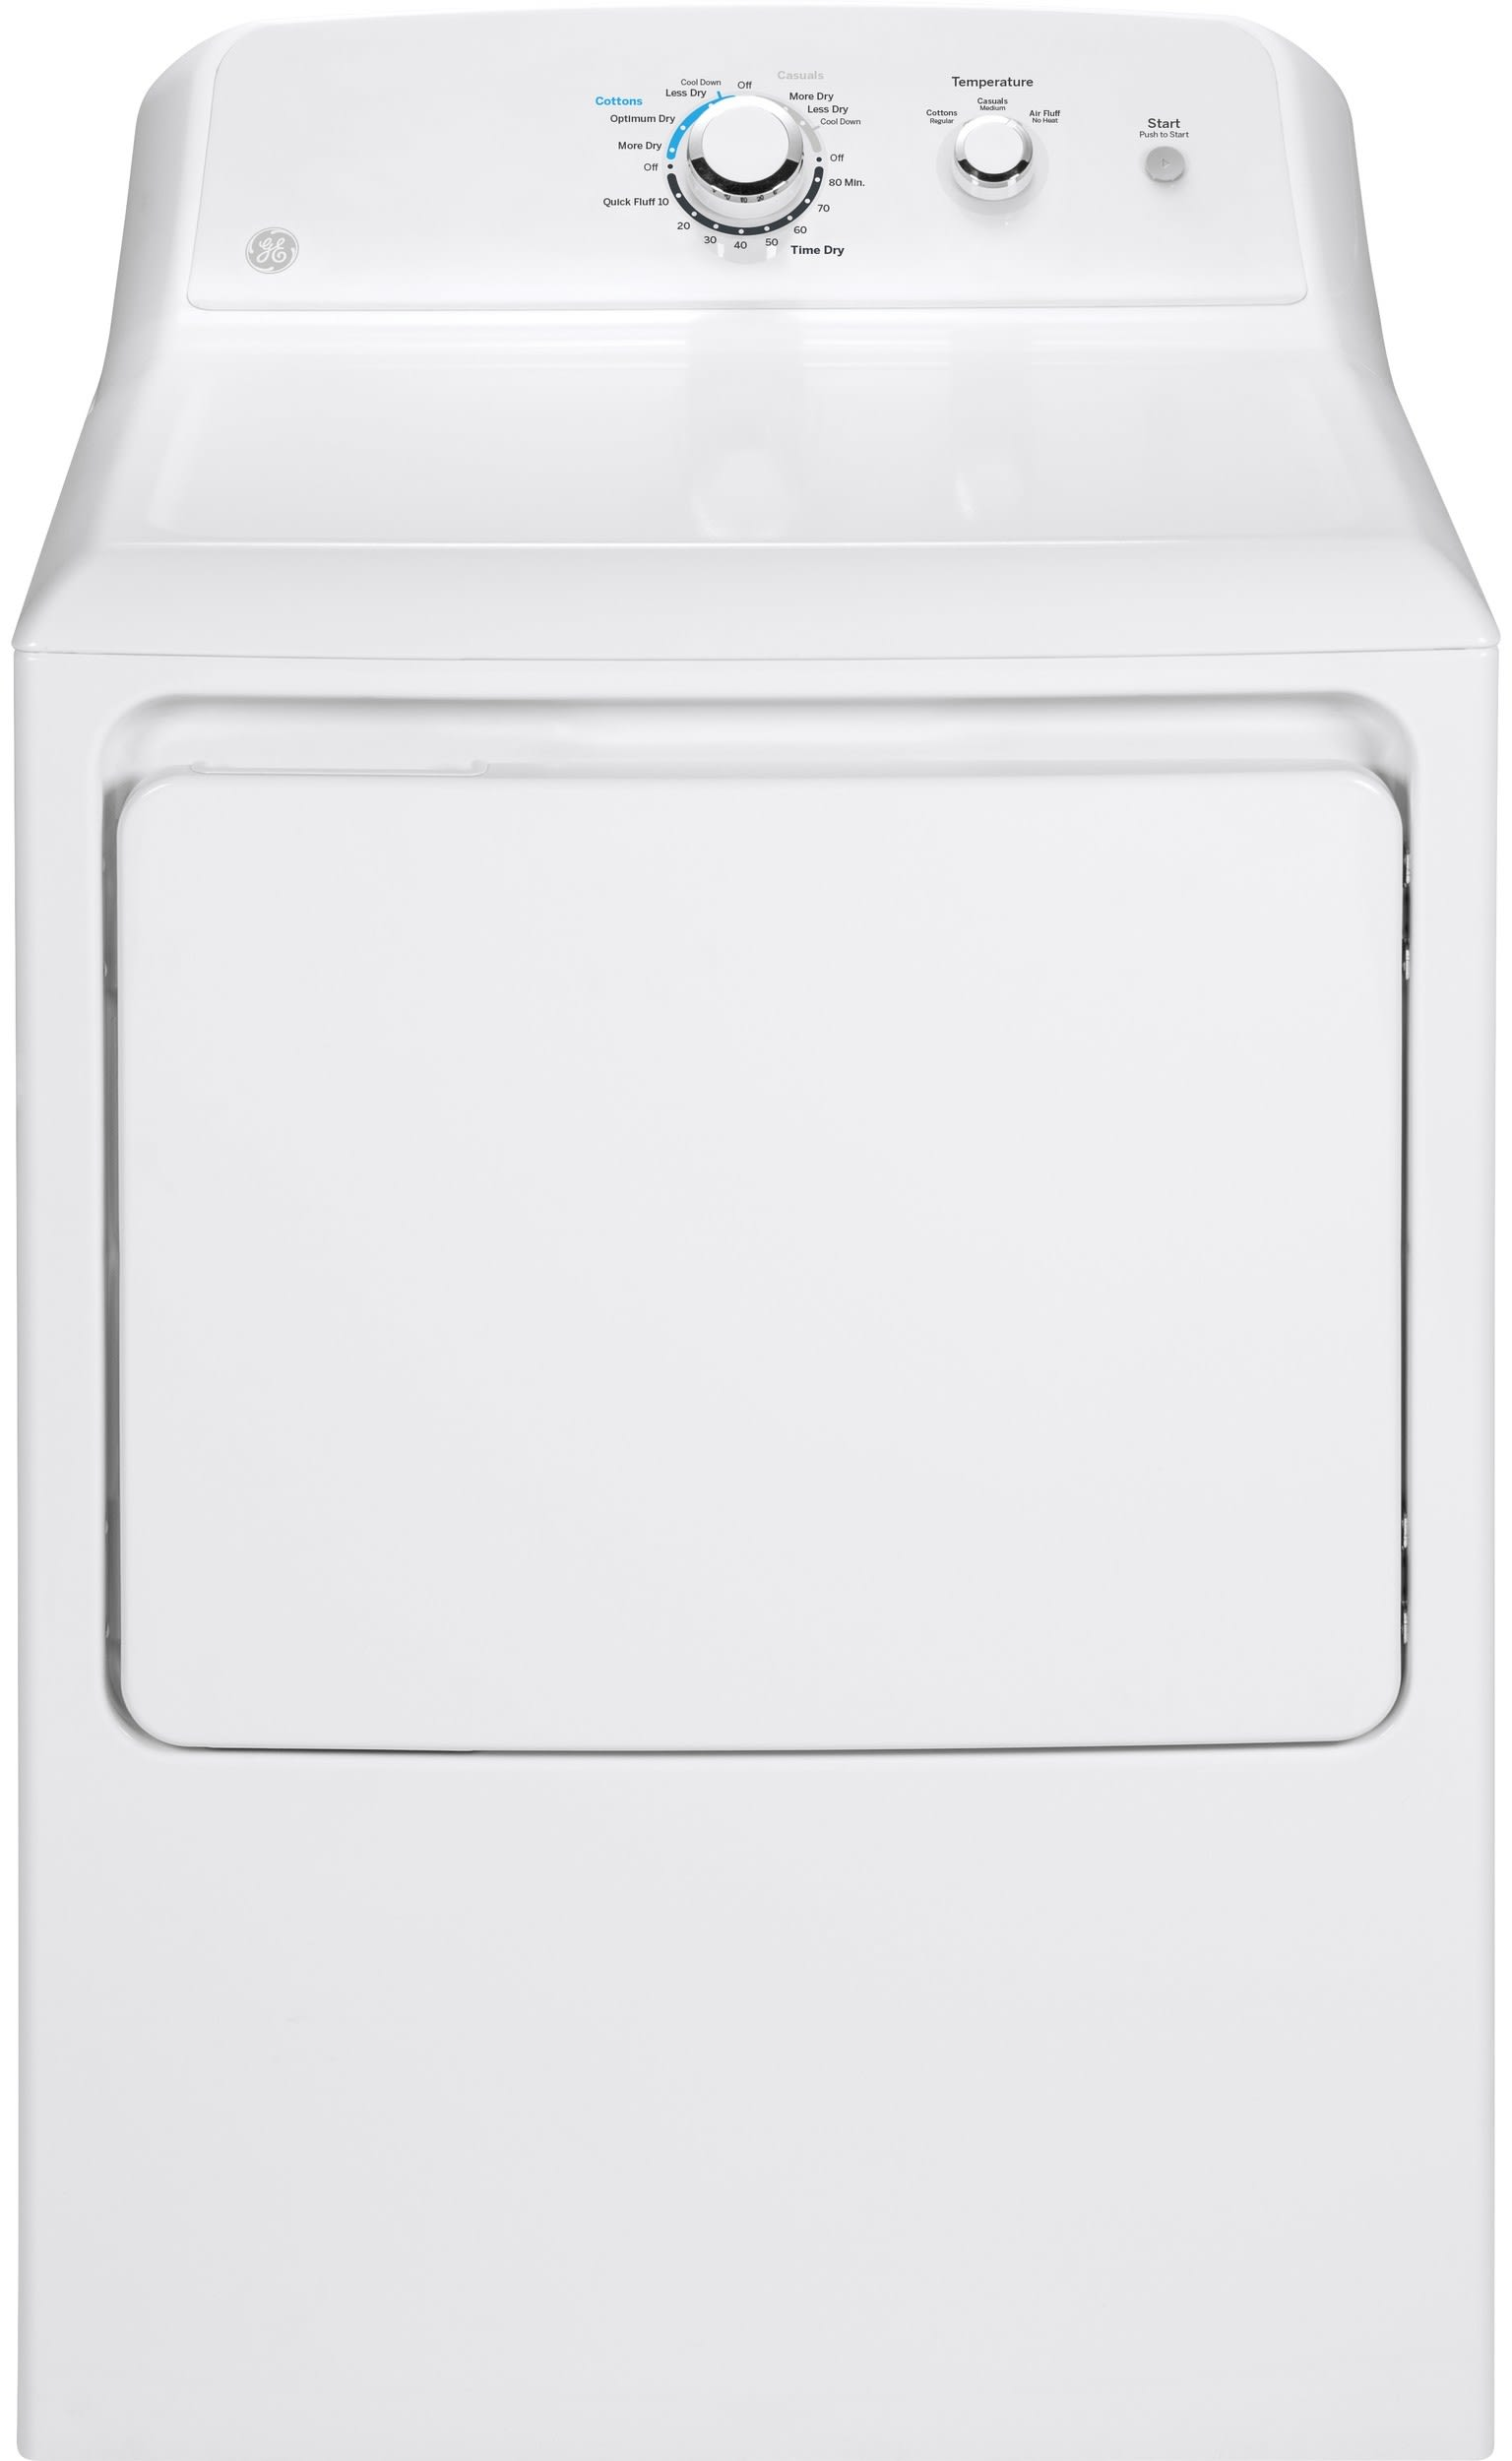 Ge Gtw330askww 27 Inch 3 8 Cu Ft Top Load Washer With 11